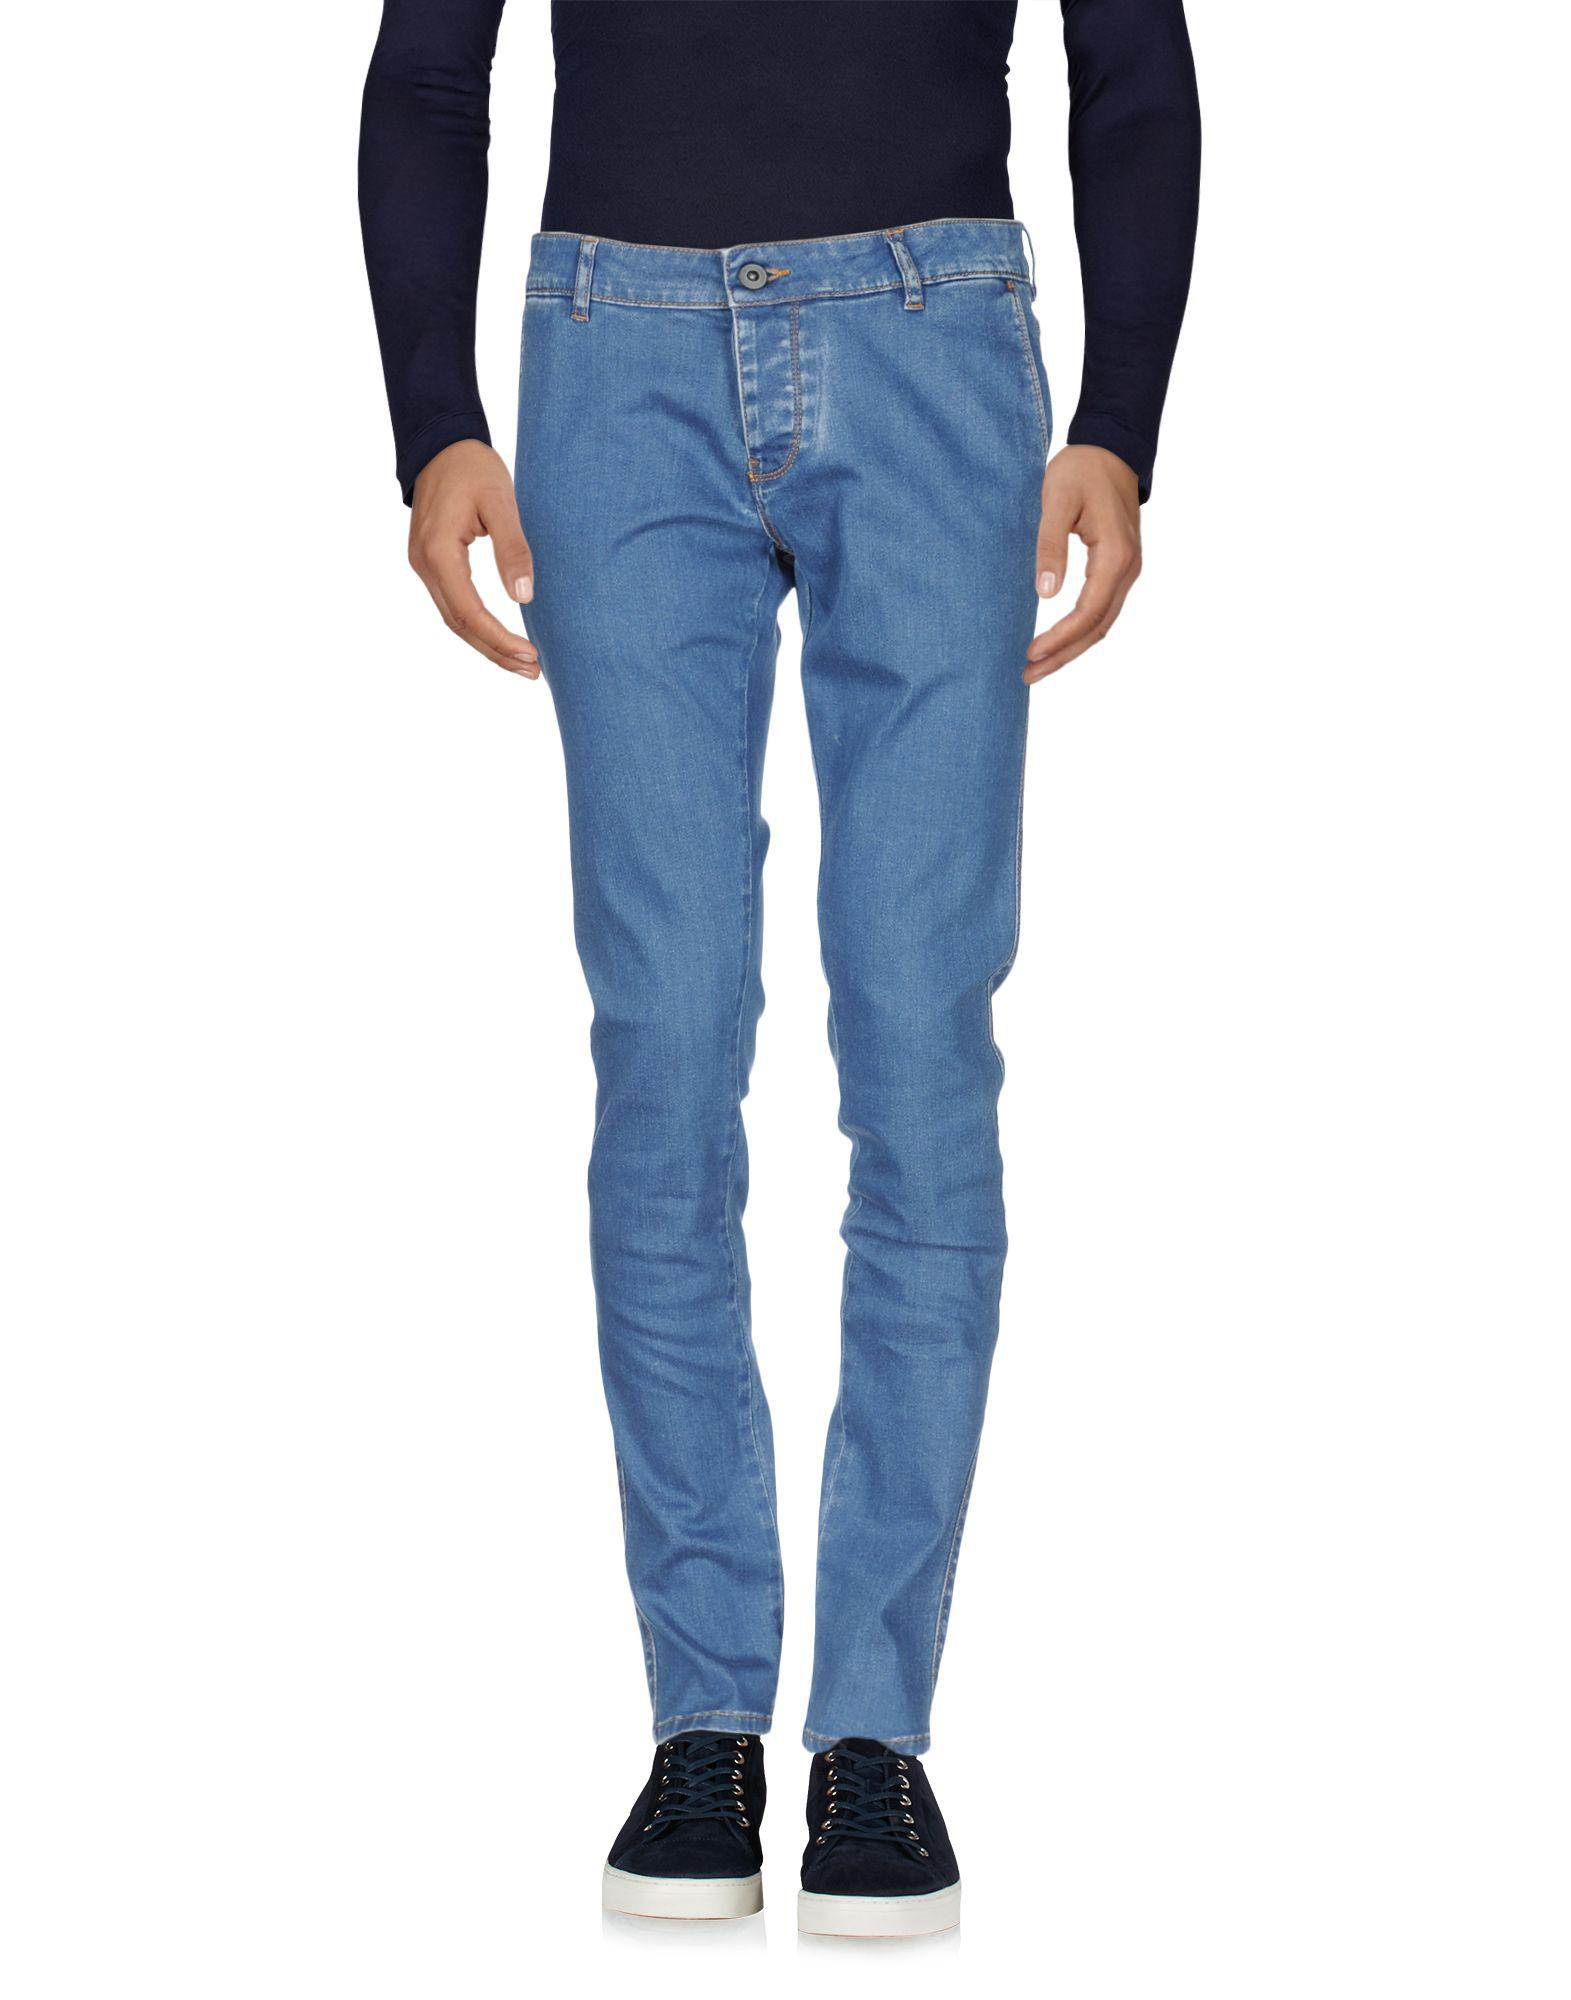 Cheap Price Discount Authentic Wholesale Quality DENIM - Denim trousers OBVIOUS BASIC Cheap Cost Largest Supplier Sale Online 8KUWKjTalS